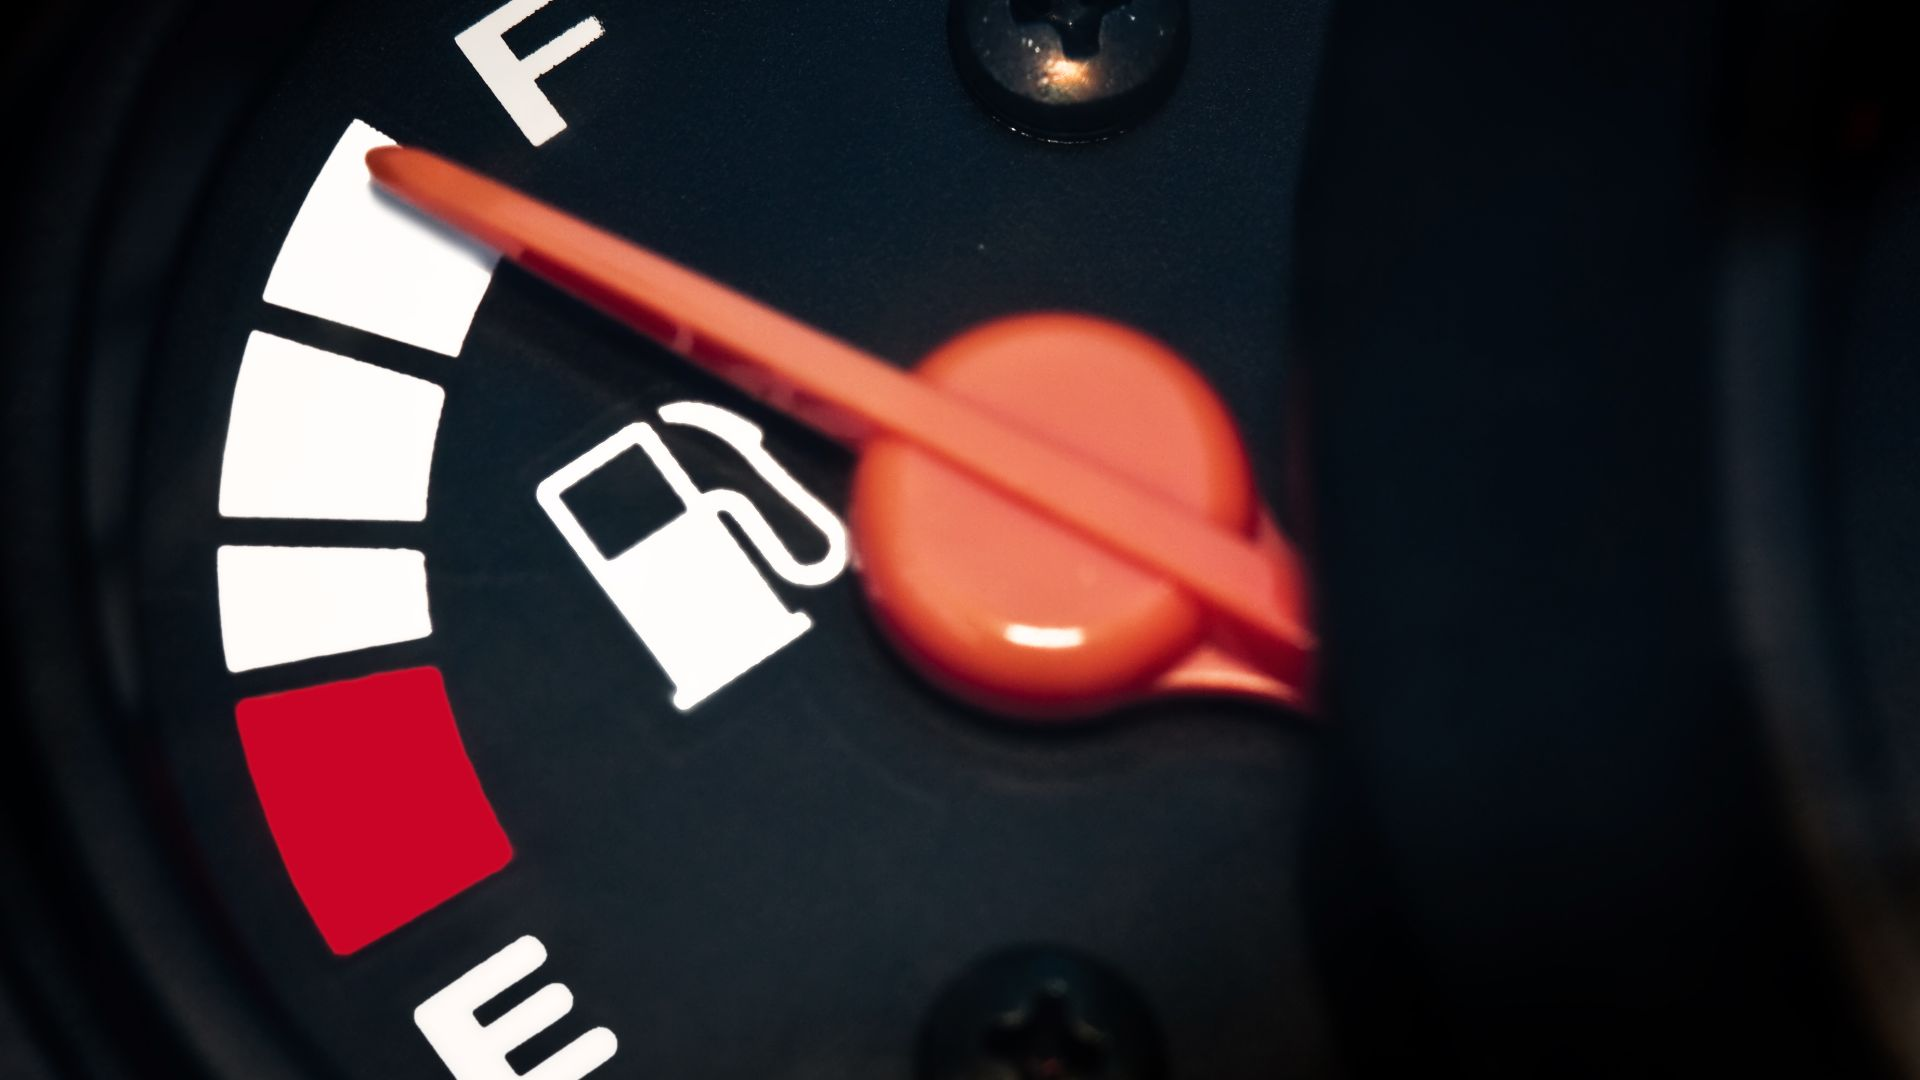 oil price drops should mean petrol savings for motorists says RAC